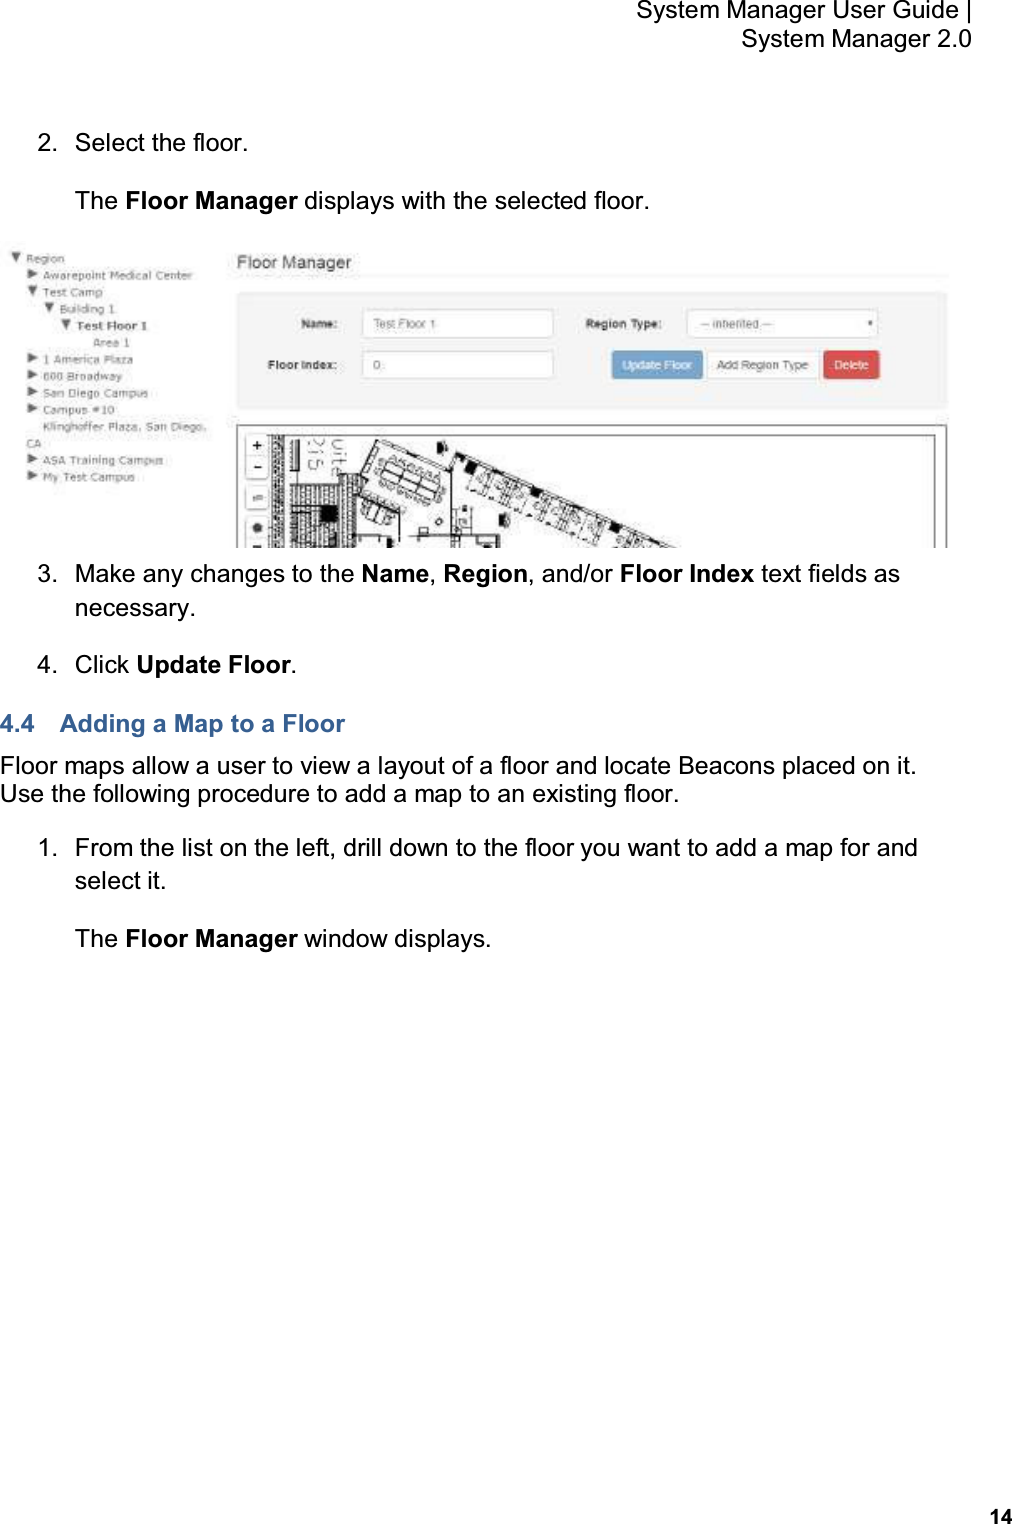 14 System Manager User Guide    System Manager 2.0 2.  Select the floor. The Floor Manager displays with the selected floor.  3.  Make any changes to the Name, Region, and/or Floor Index text fields as necessary. 4.  Click Update Floor. 4.4  Adding a Map to a Floor Floor maps allow a user to view a layout of a floor and locate Beacons placed on it.  Use the following procedure to add a map to an existing floor. 1.  From the list on the left, drill down to the floor you want to add a map for and select it. The Floor Manager window displays.